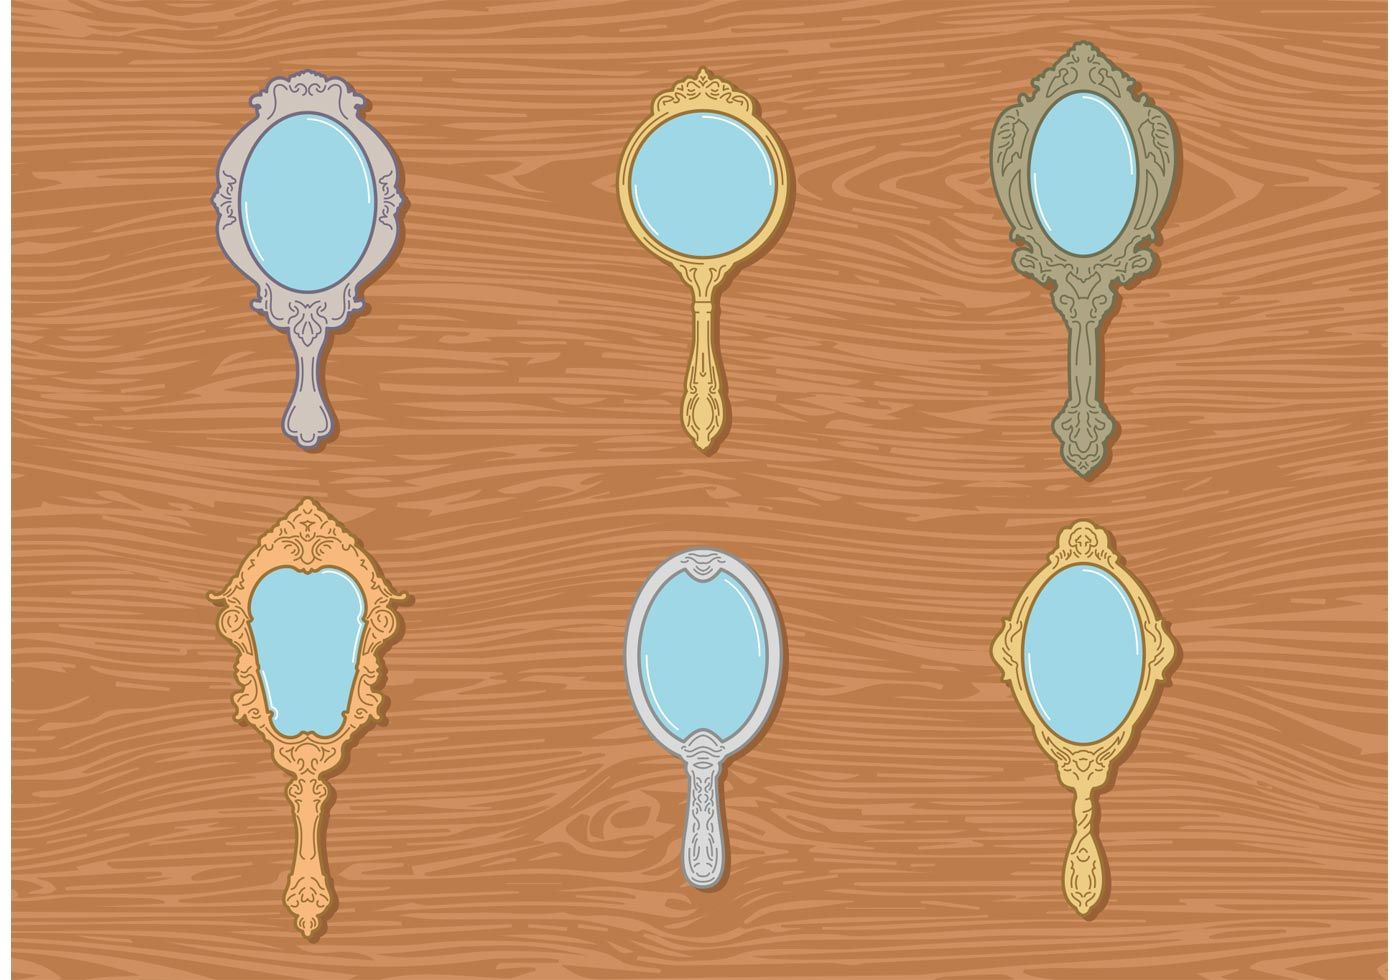 6 Vintages Antique Style Hand Mirror Vector With A Minimal Style In 2020 Mirror Vector Hand Mirror Mirror Illustration